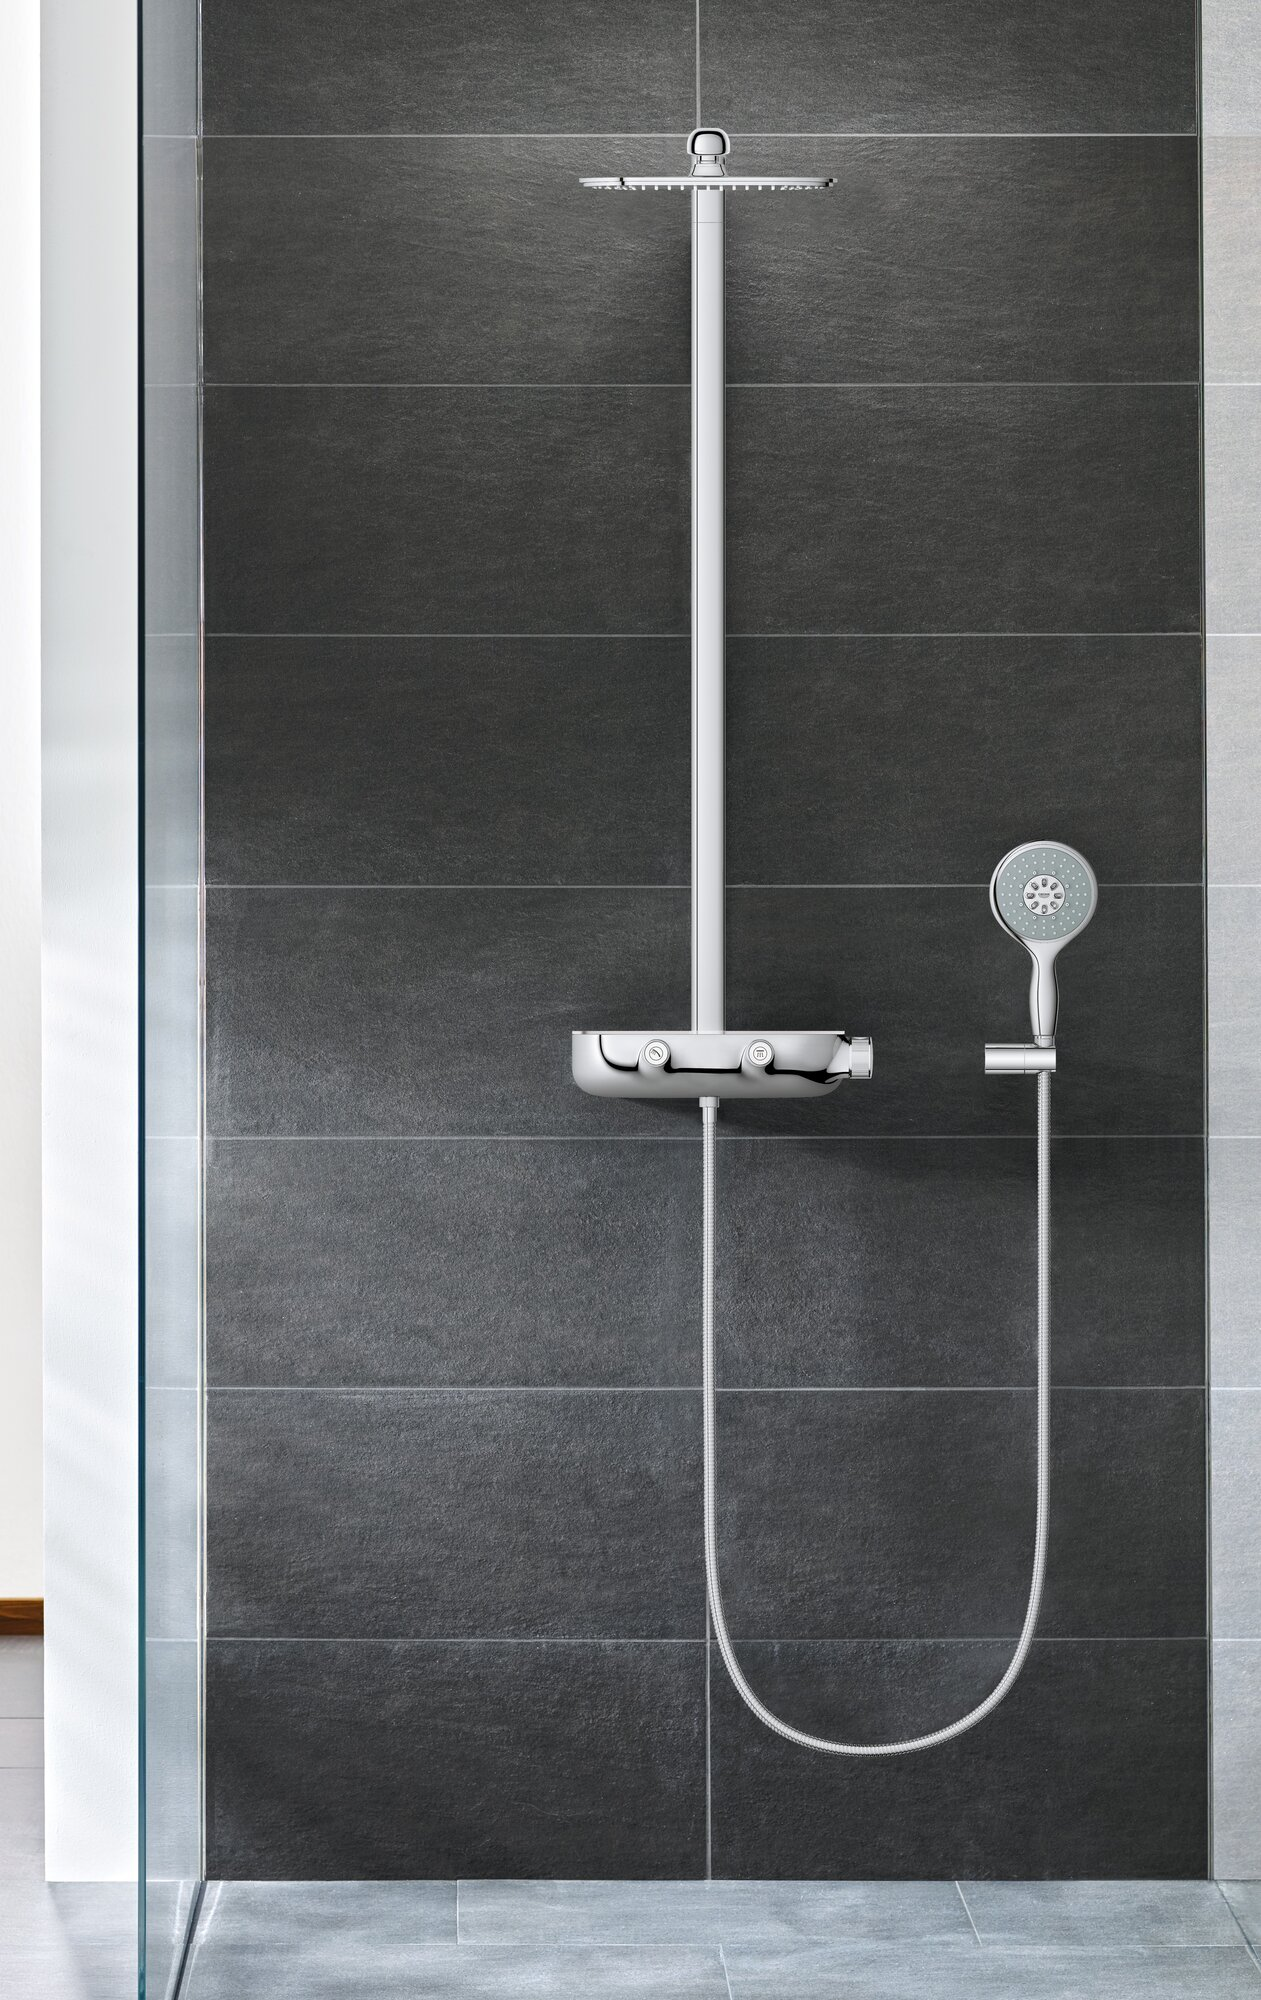 grohe smart control complete shower system ebay. Black Bedroom Furniture Sets. Home Design Ideas